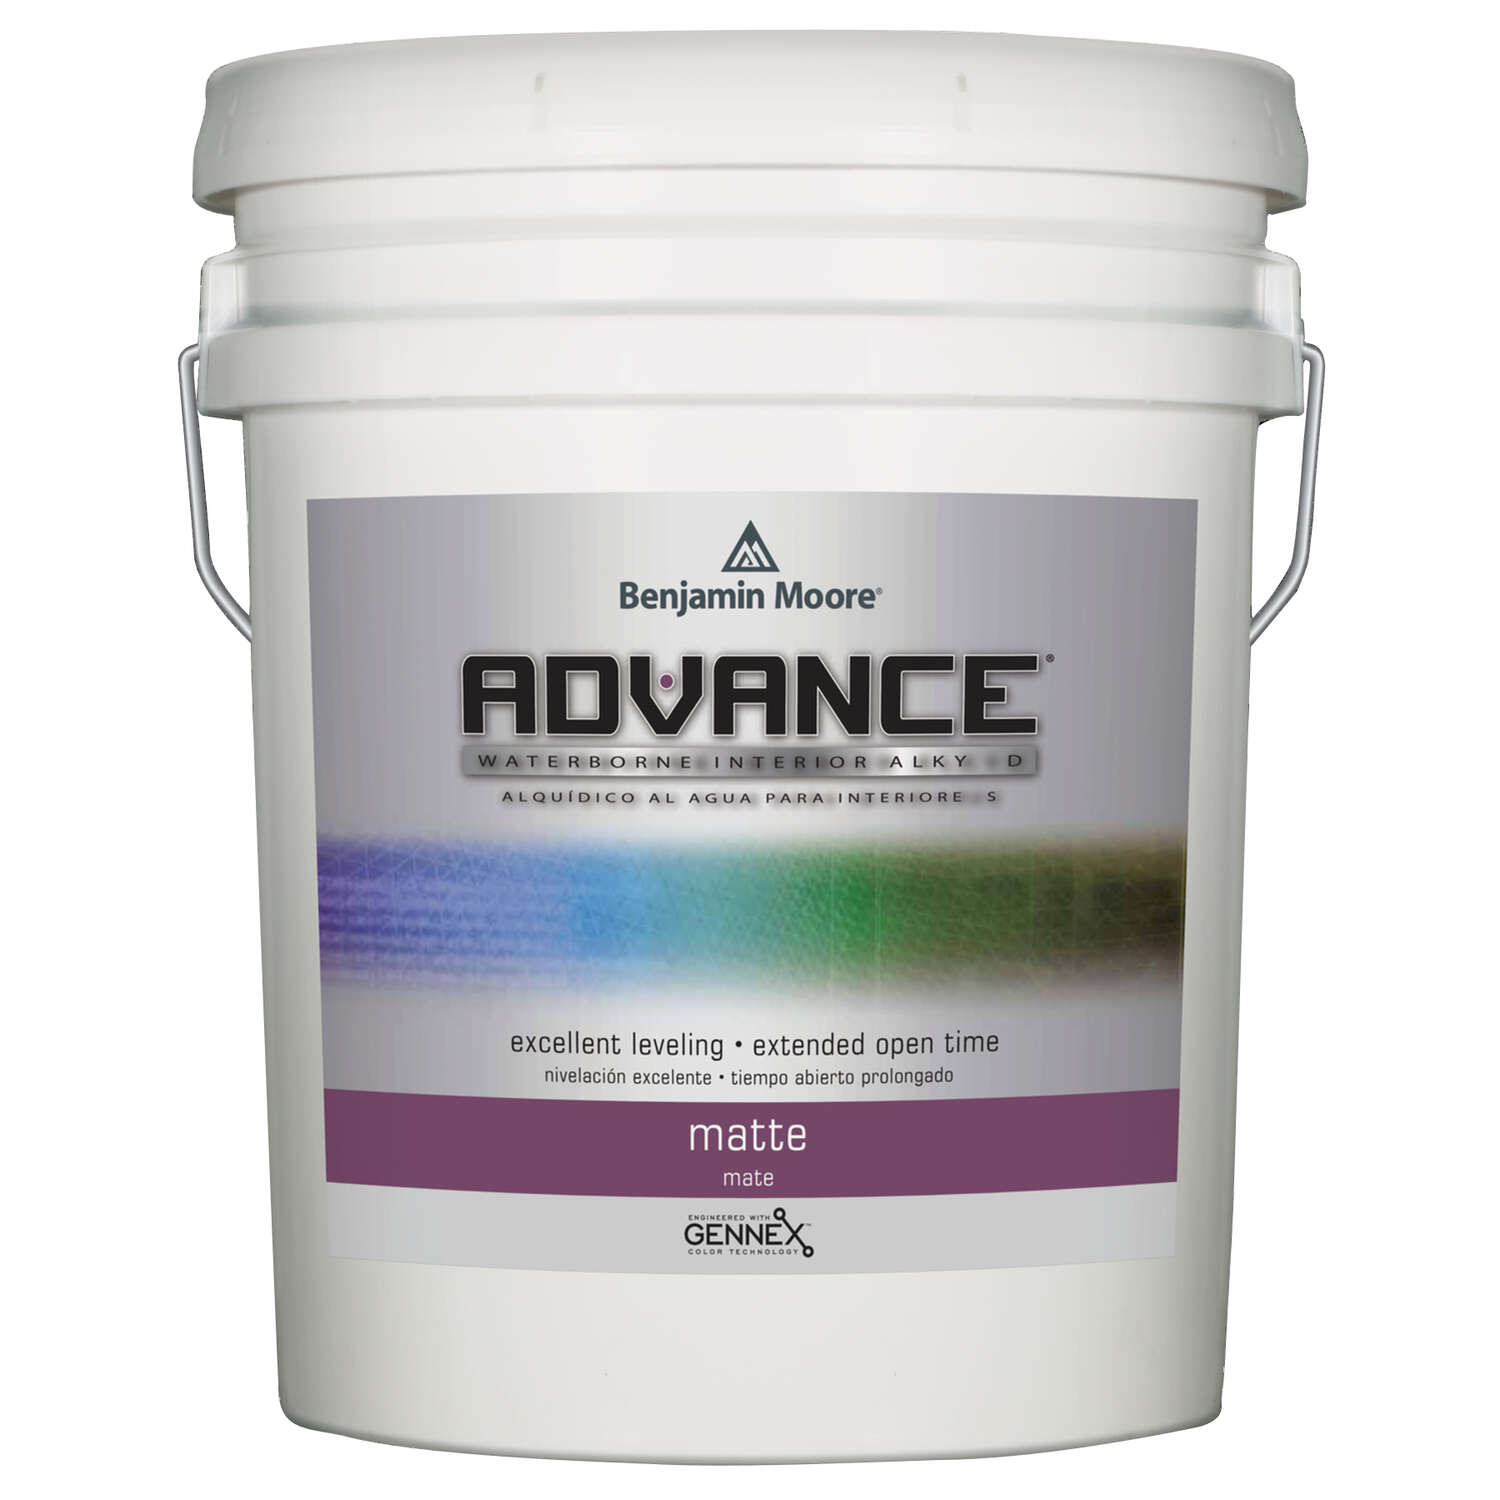 Benjamin Moore  Advance  Matte  Base 1  Alkyd/Styrene Acrylate  Paint  Interior  5 gal.